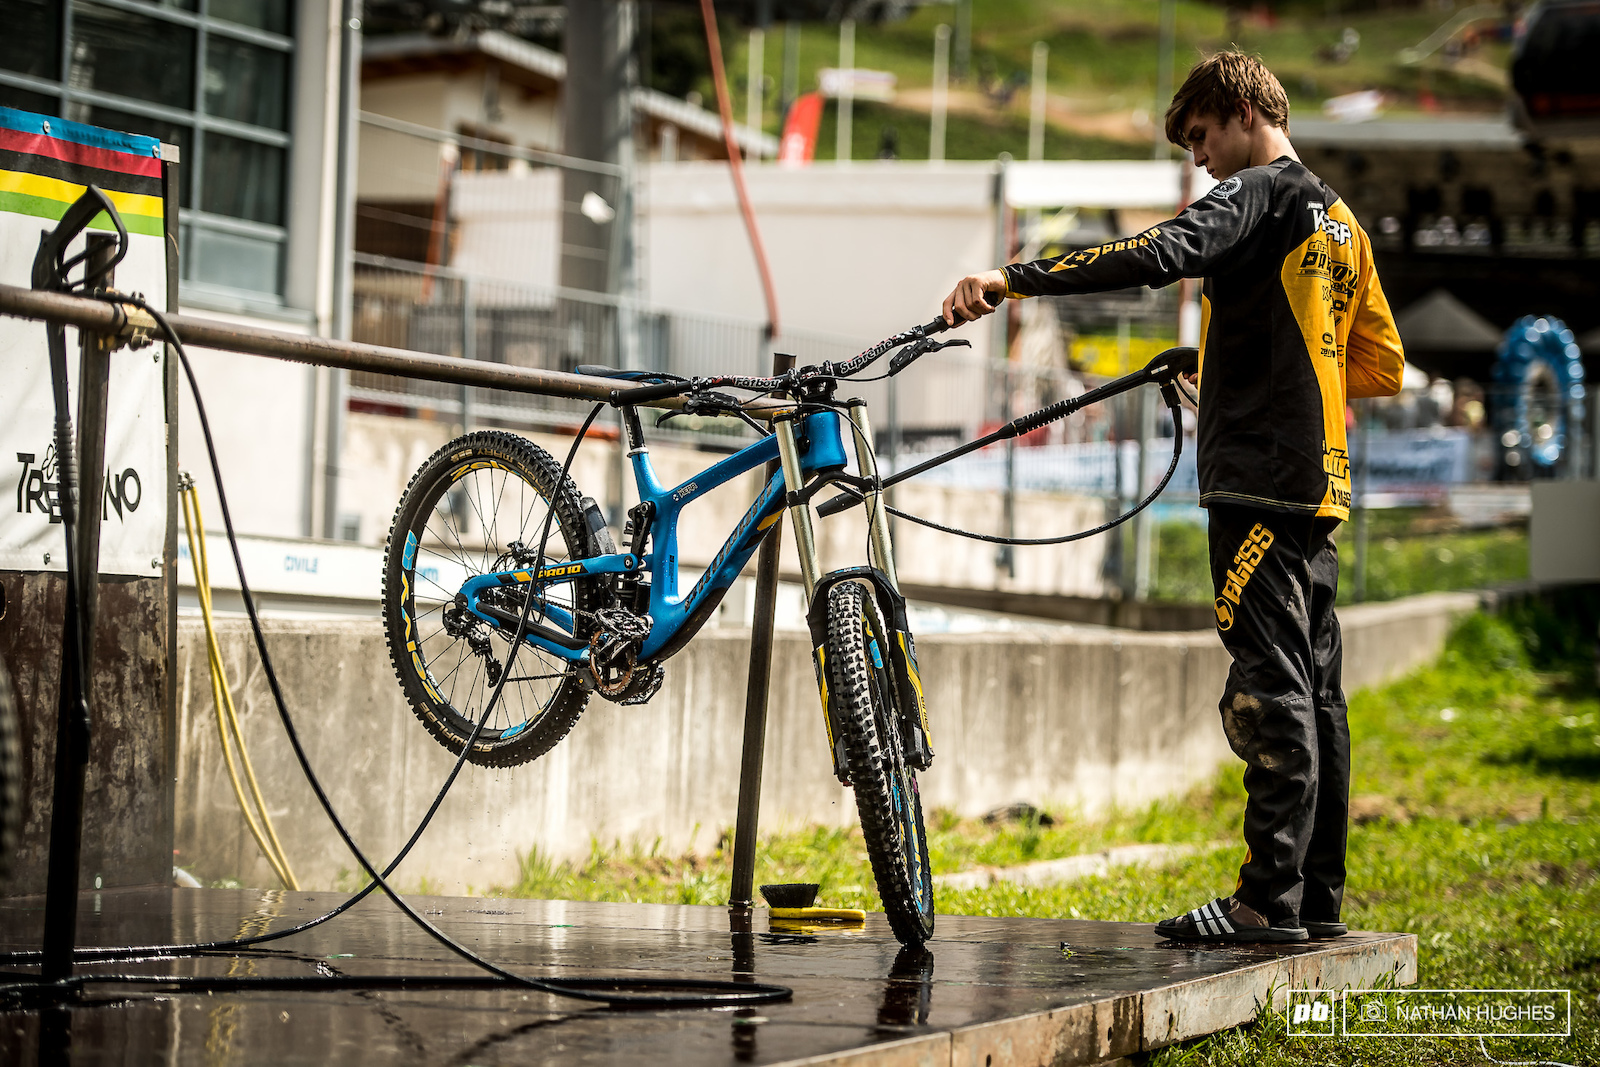 Time for a proper hose down after a tough day surfing the Val Di Sole brown pow.